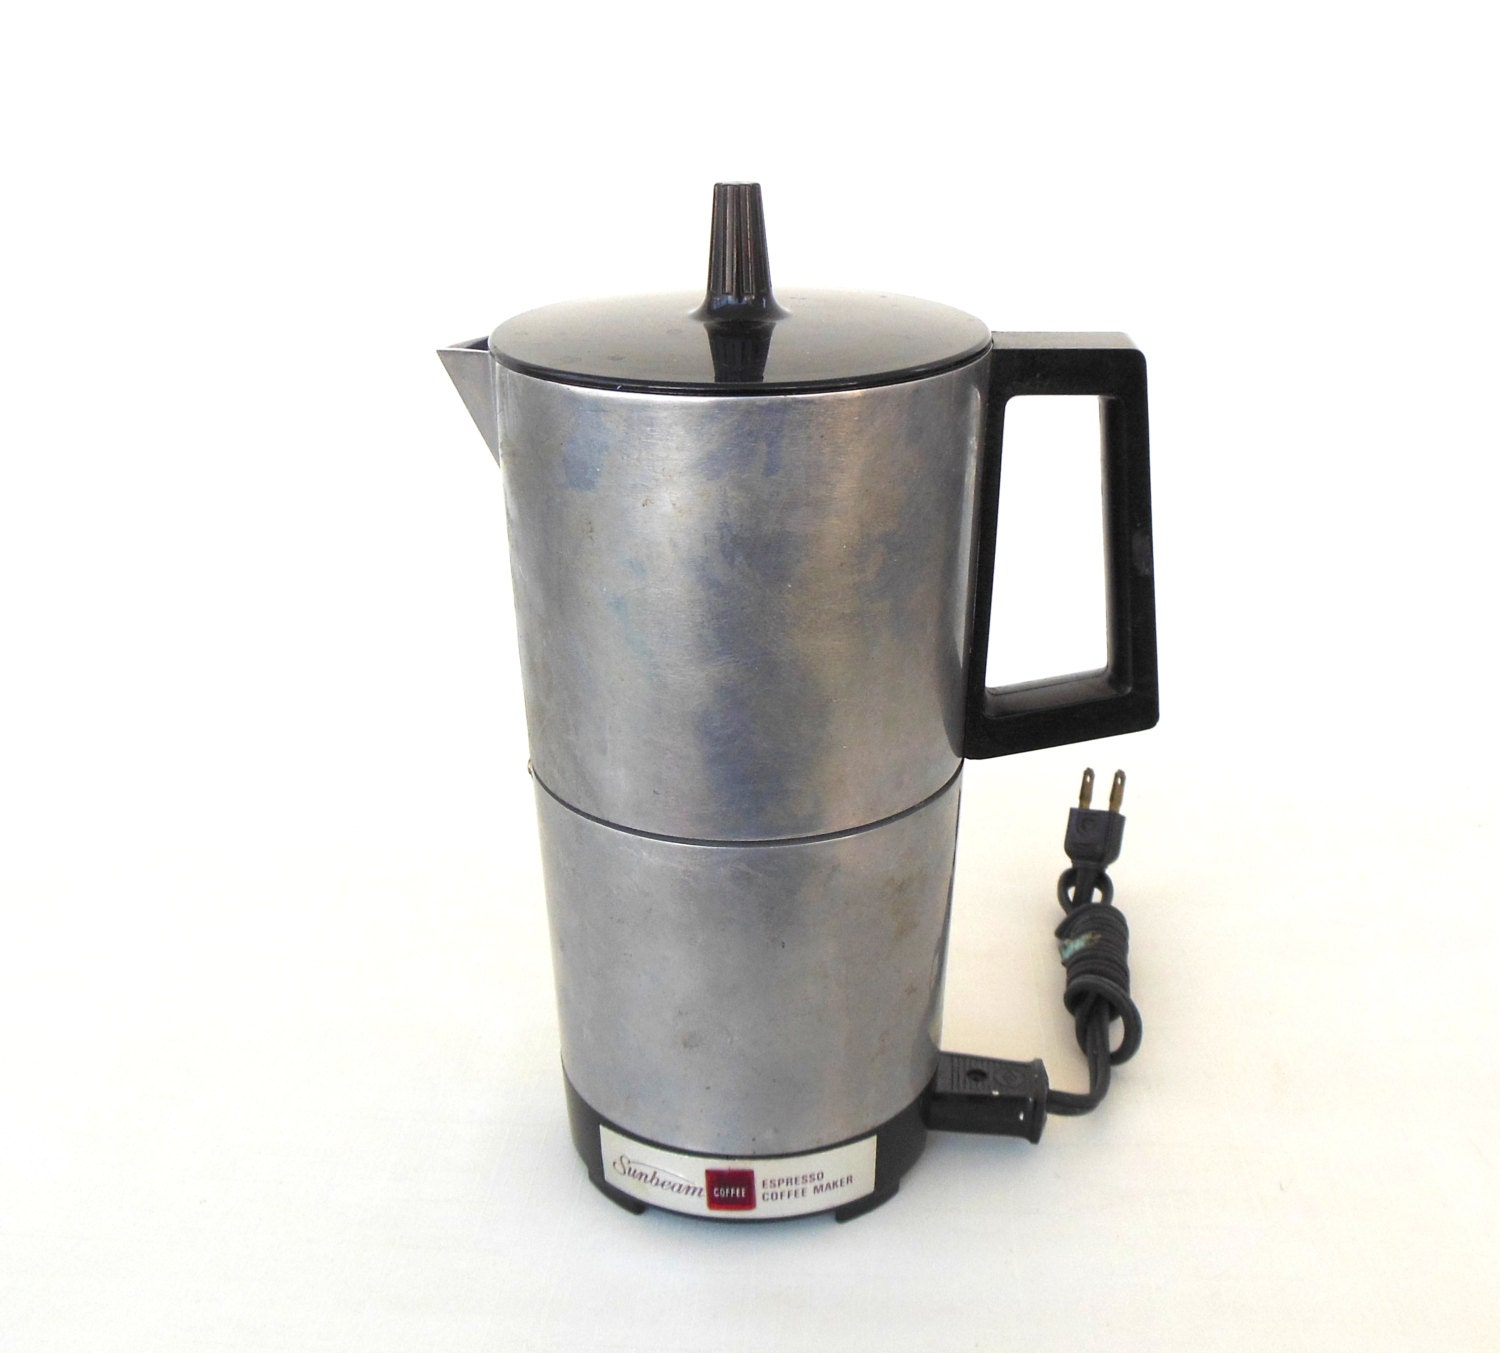 Sunbeam Percolator Coffee Maker : Sunbeam Espresso Maker Electric Small Appliance Vintage IES 1C